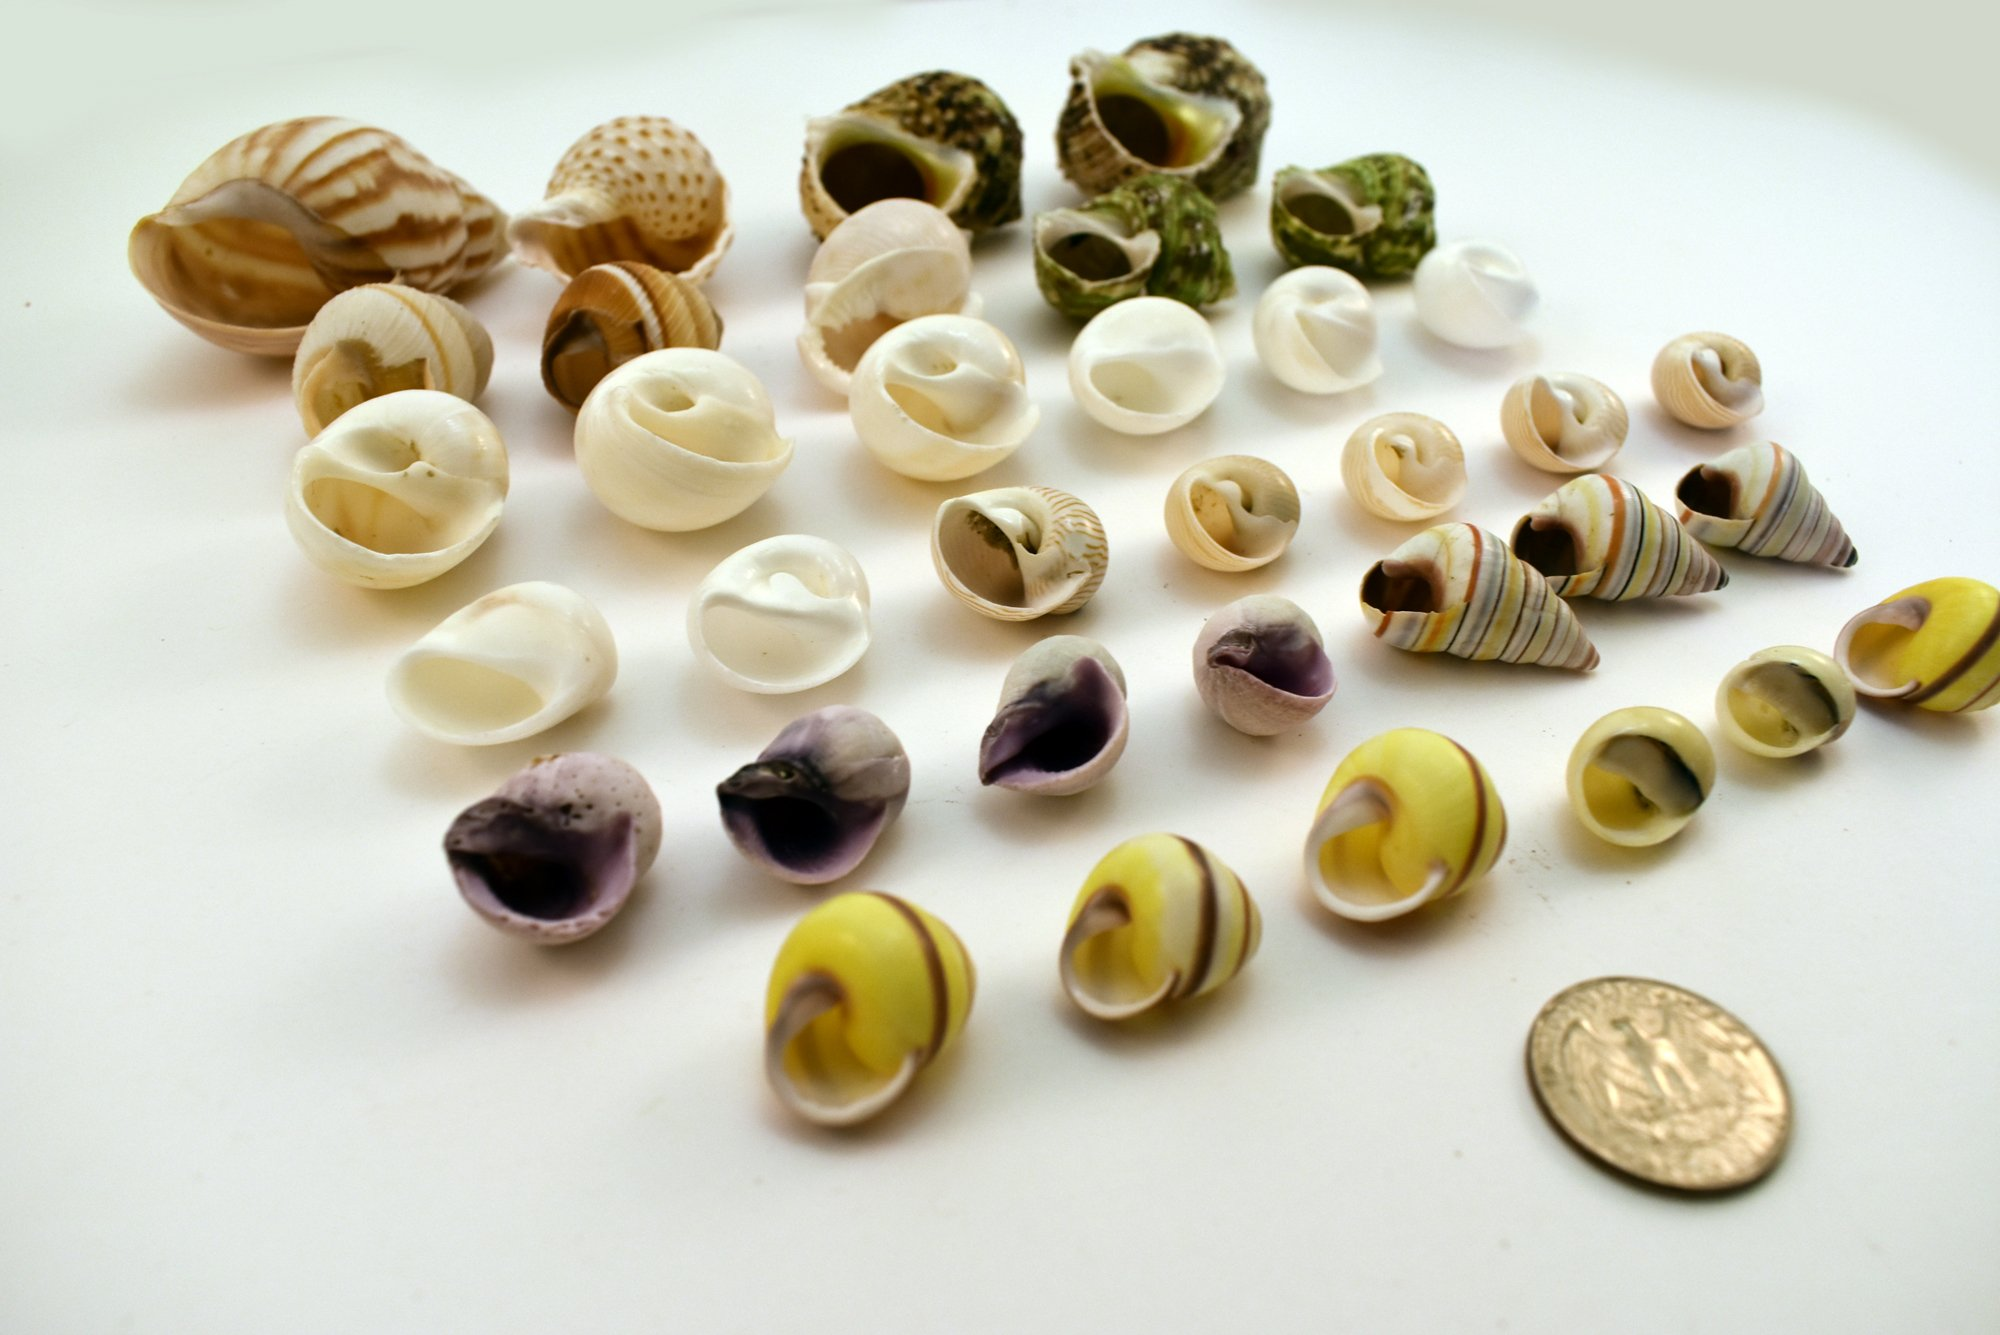 Select 35 Hermit Crab Shells Assorted Changing Seashells SMALL 1/2''-2'' Size (opening size 1/4'' - 1'') Beautiful